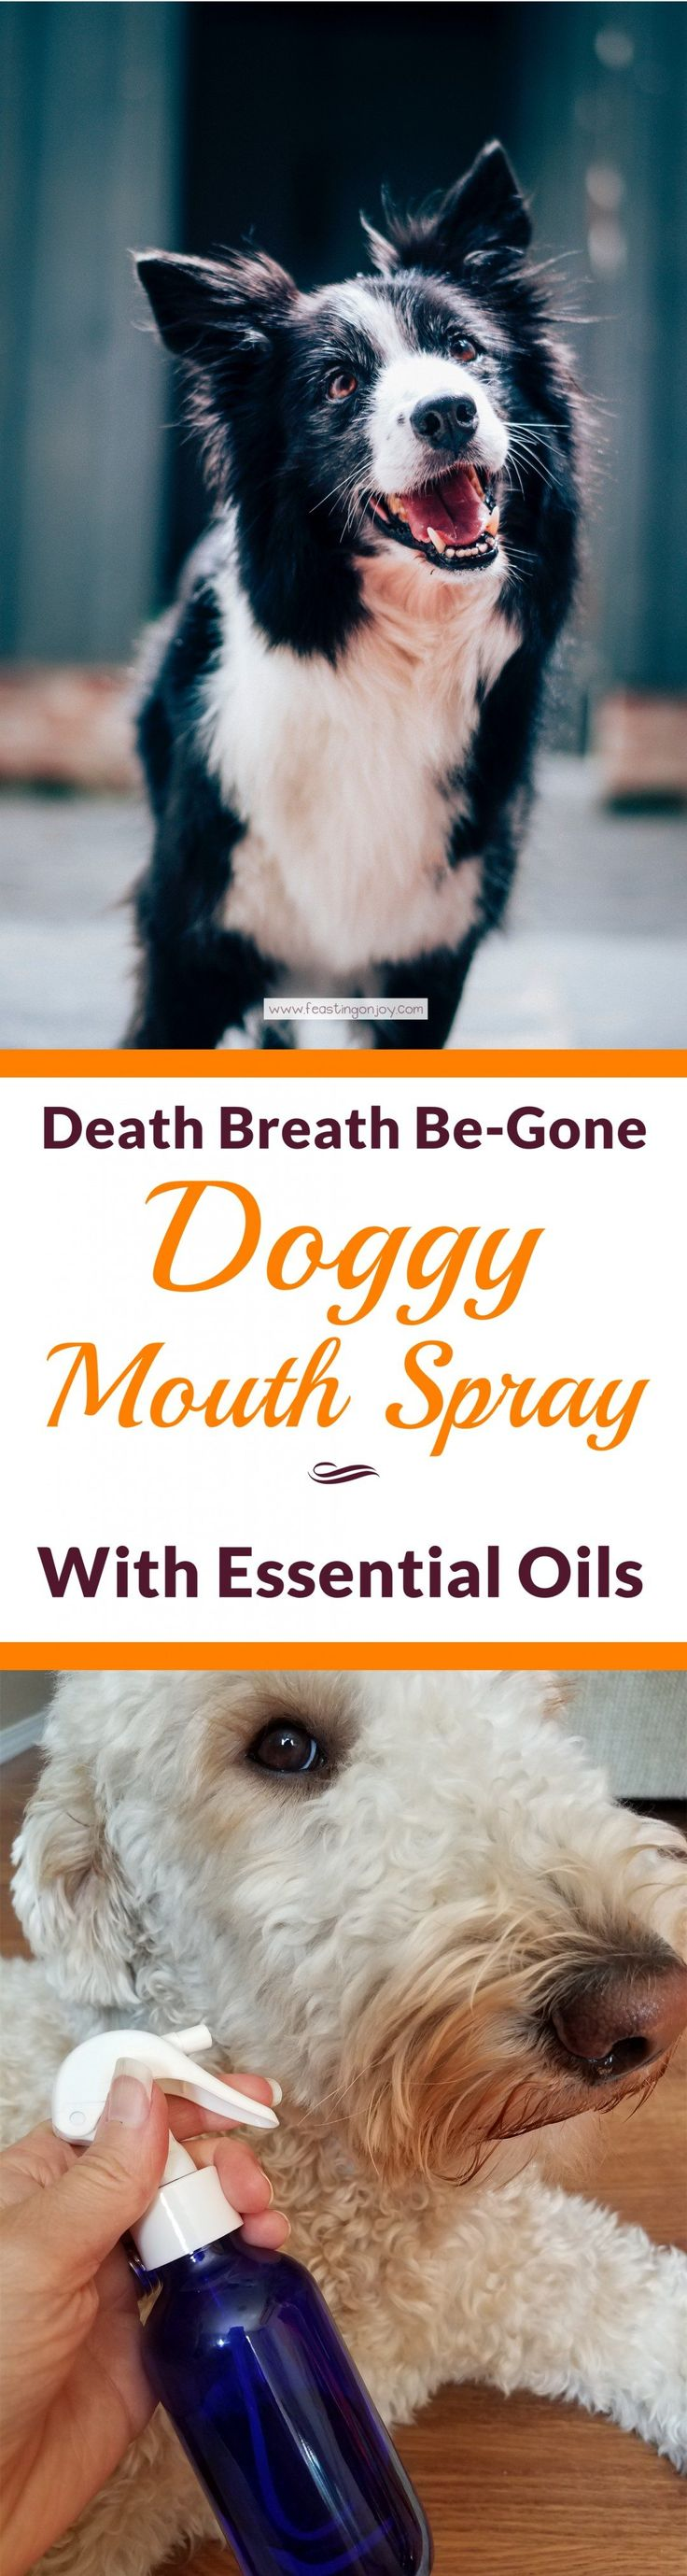 Death Breath Be-Gone Doggy Mouth Spray with Essential Oils | Feasting On Joy